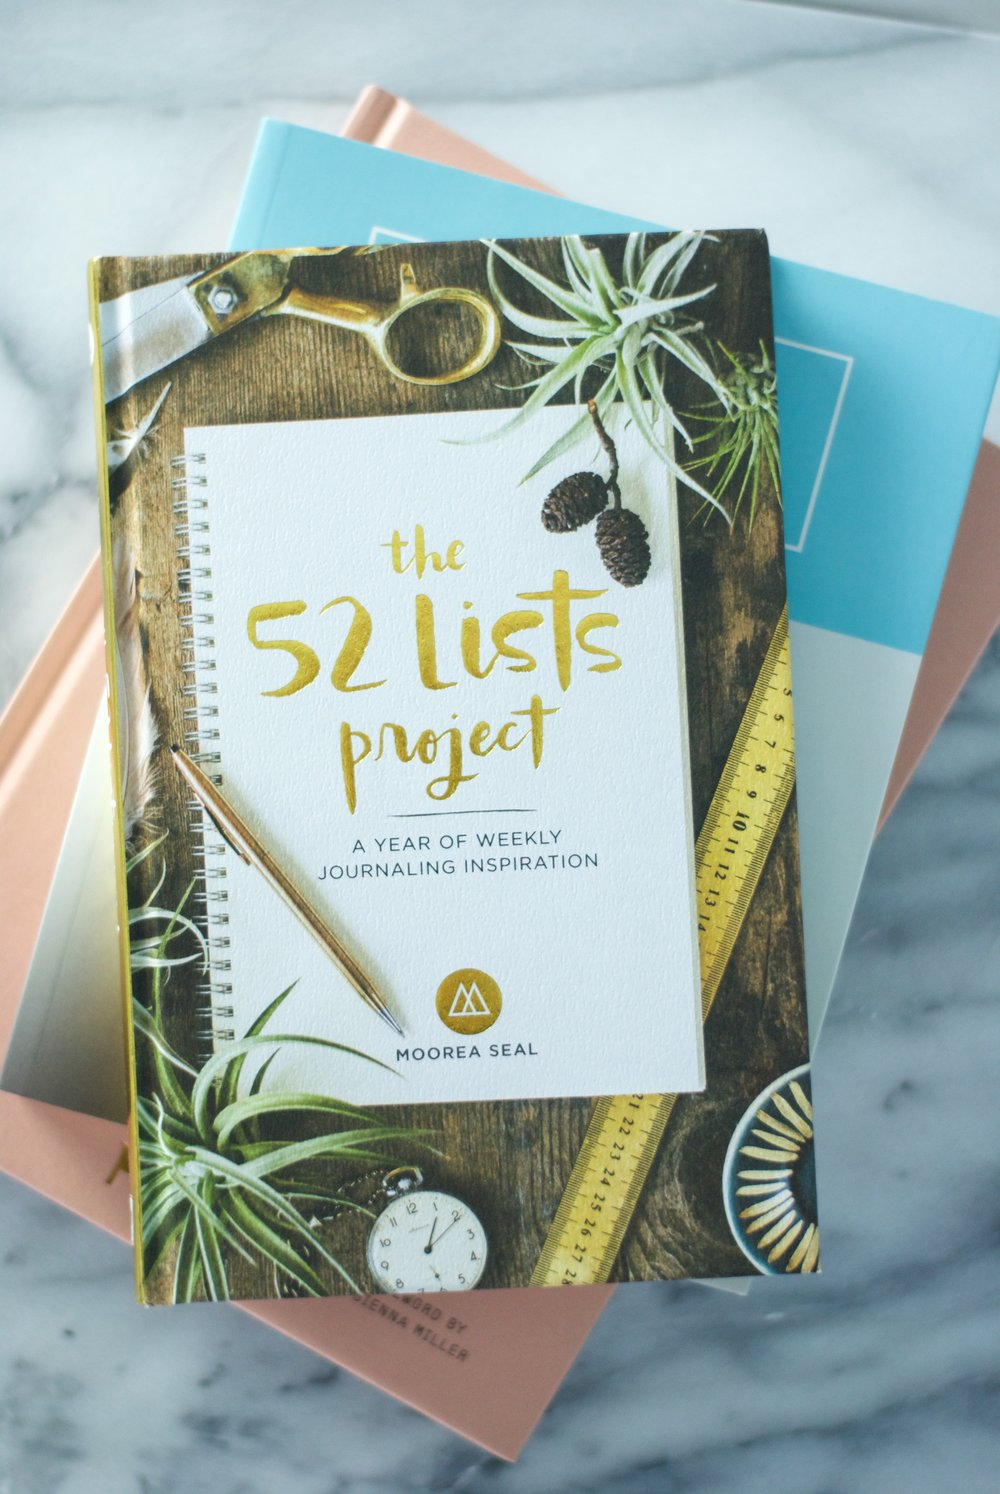 Beauty by Brittany,  The 52 Lists Project by Moorea Seal